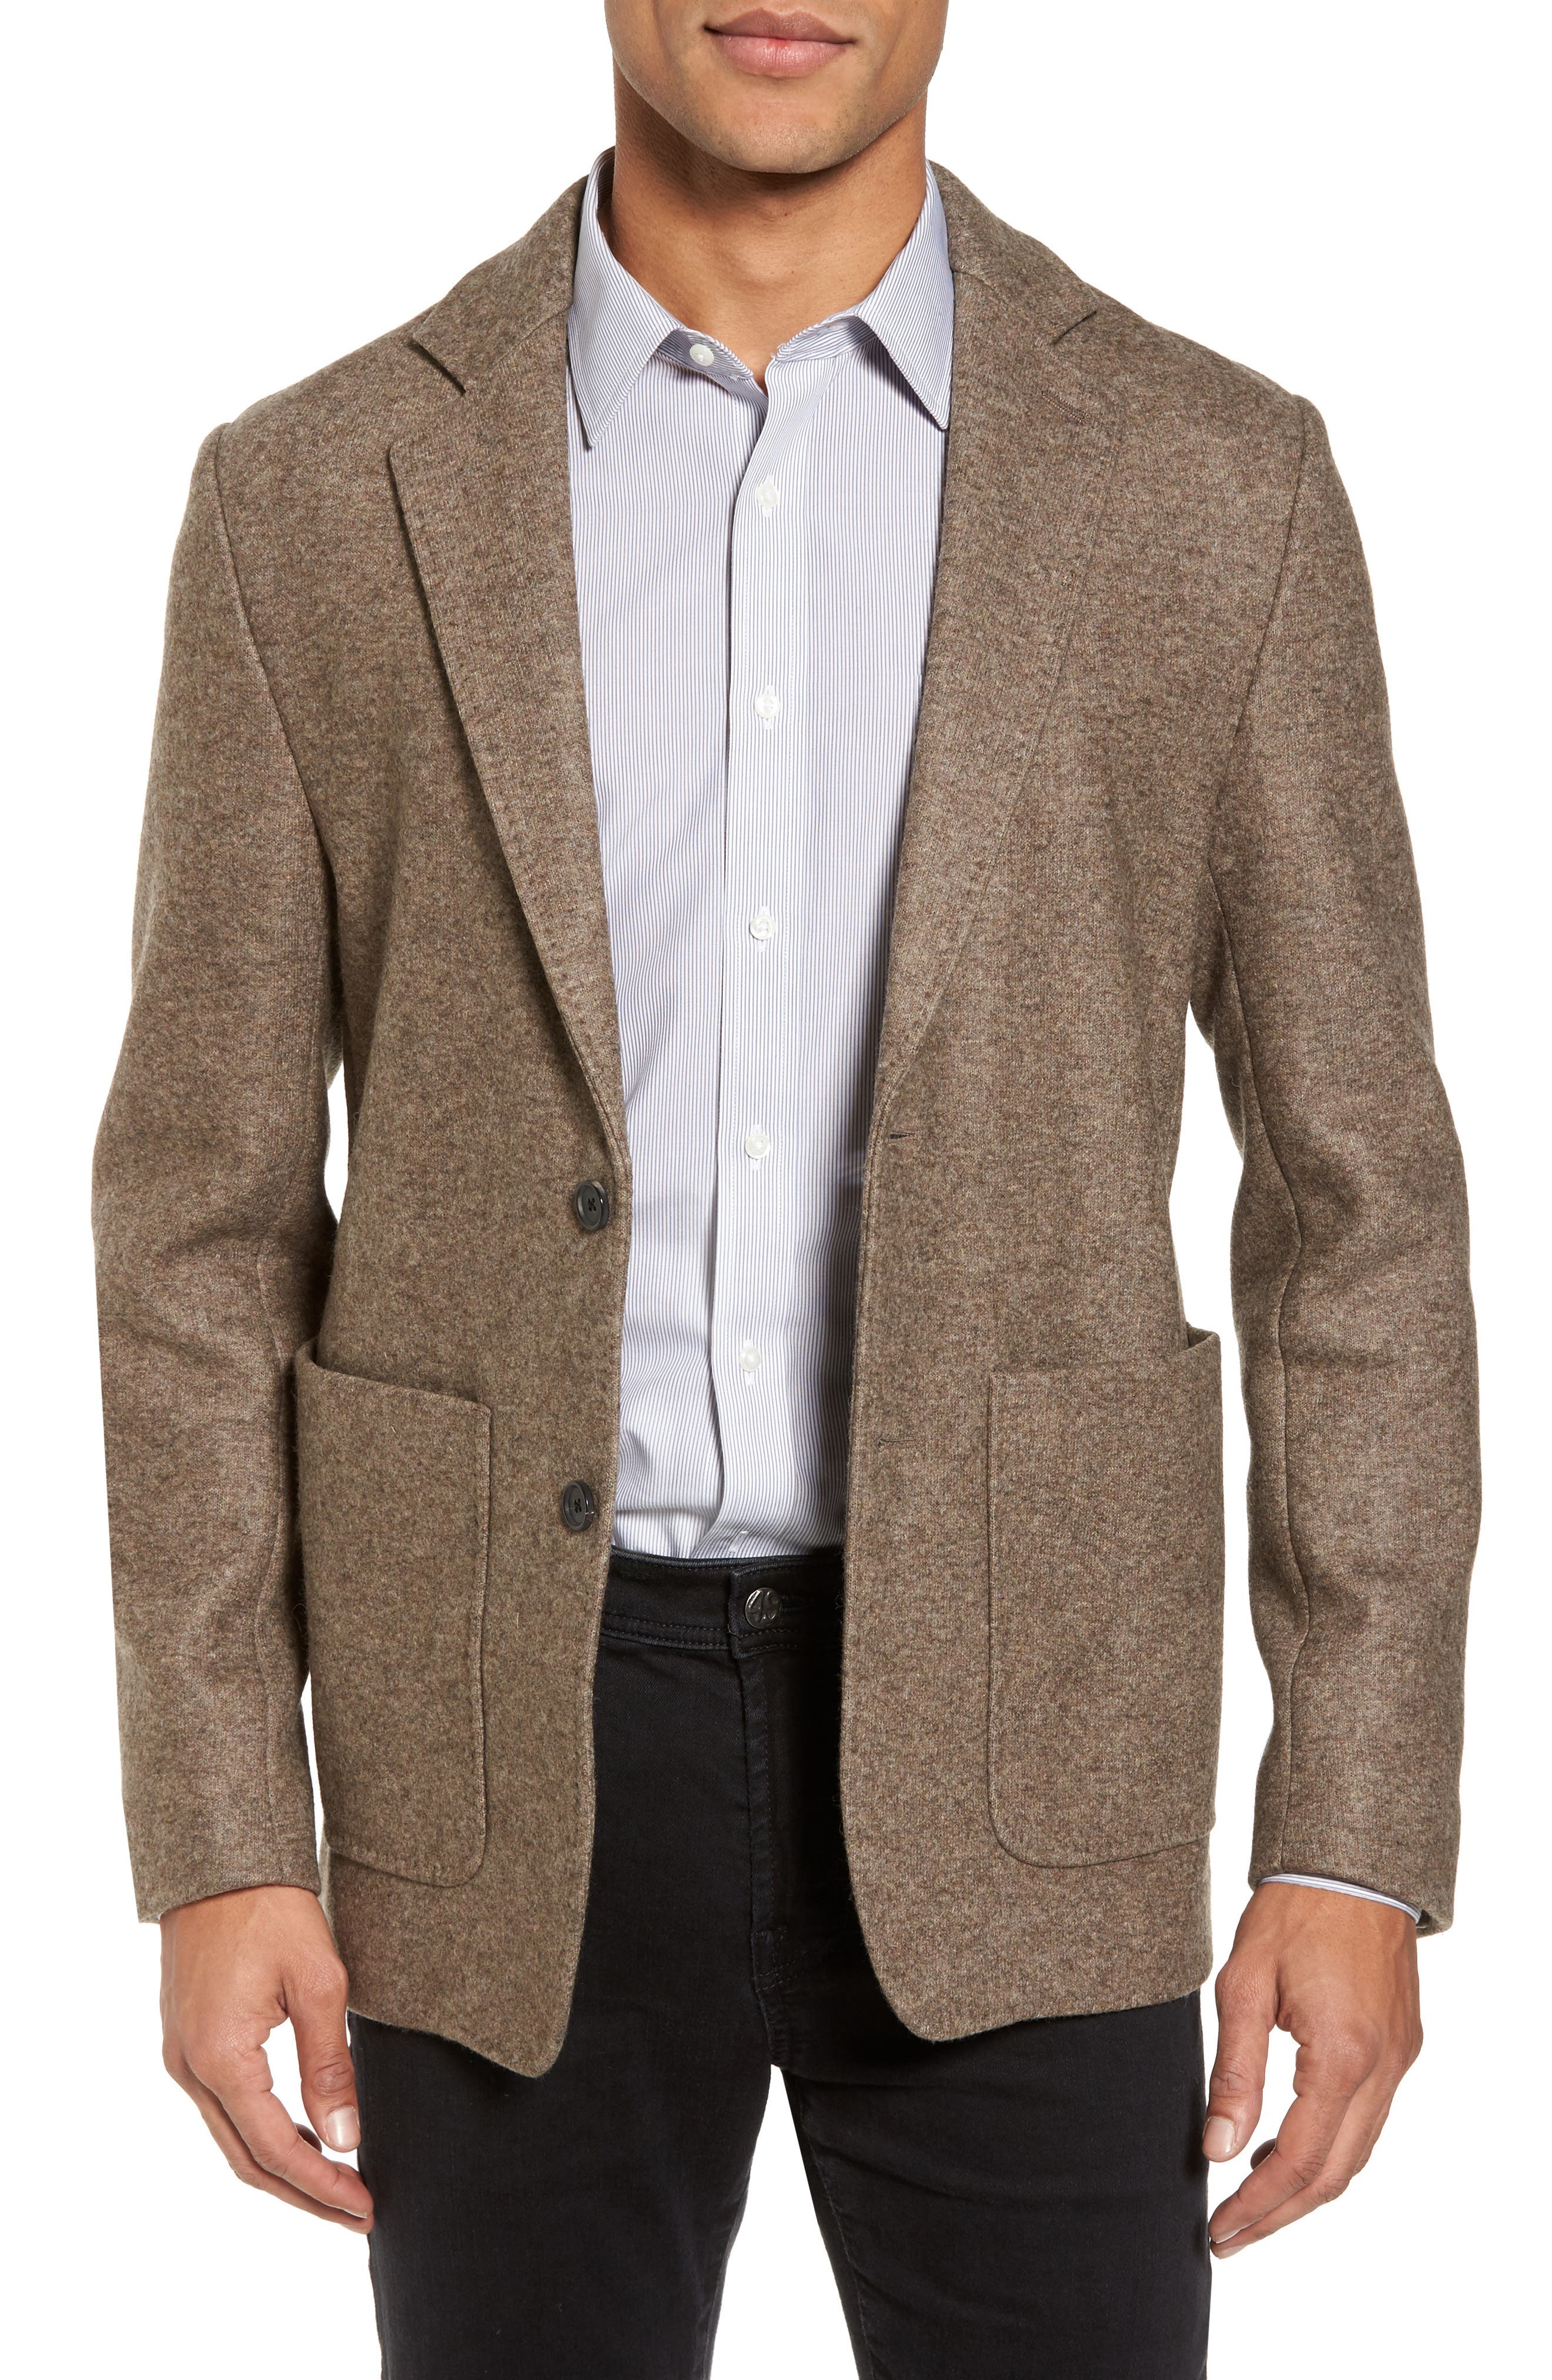 Dylan Knit Wool Blend Sport Coat,                             Main thumbnail 1, color,                             Taupe